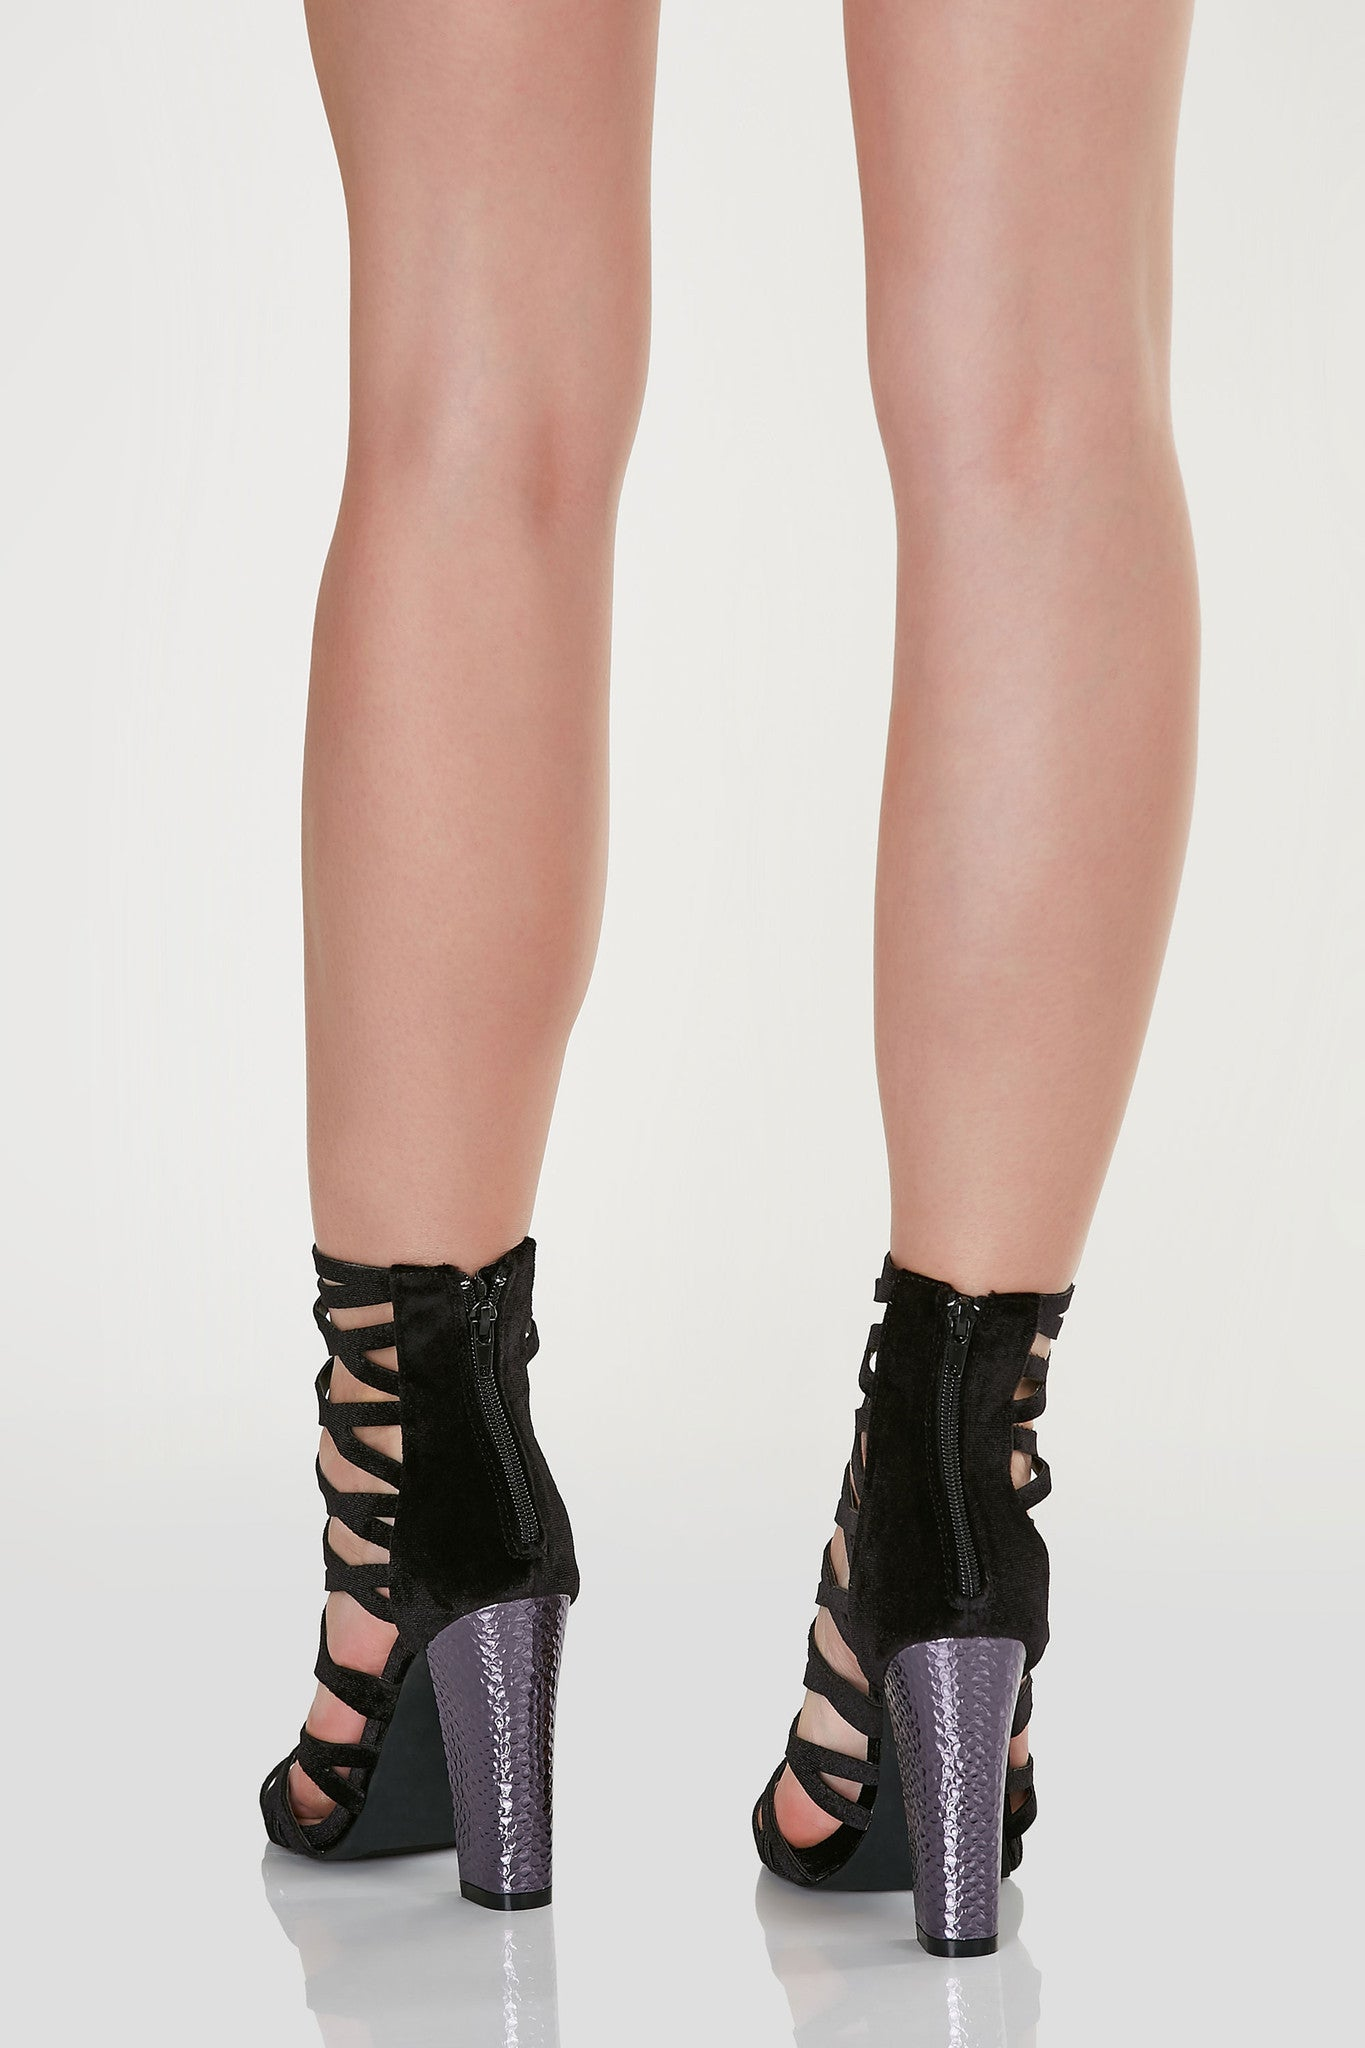 Sexy above the ankle cut out heels with caged design and open toe finish. Contrast block heels with textured finish.